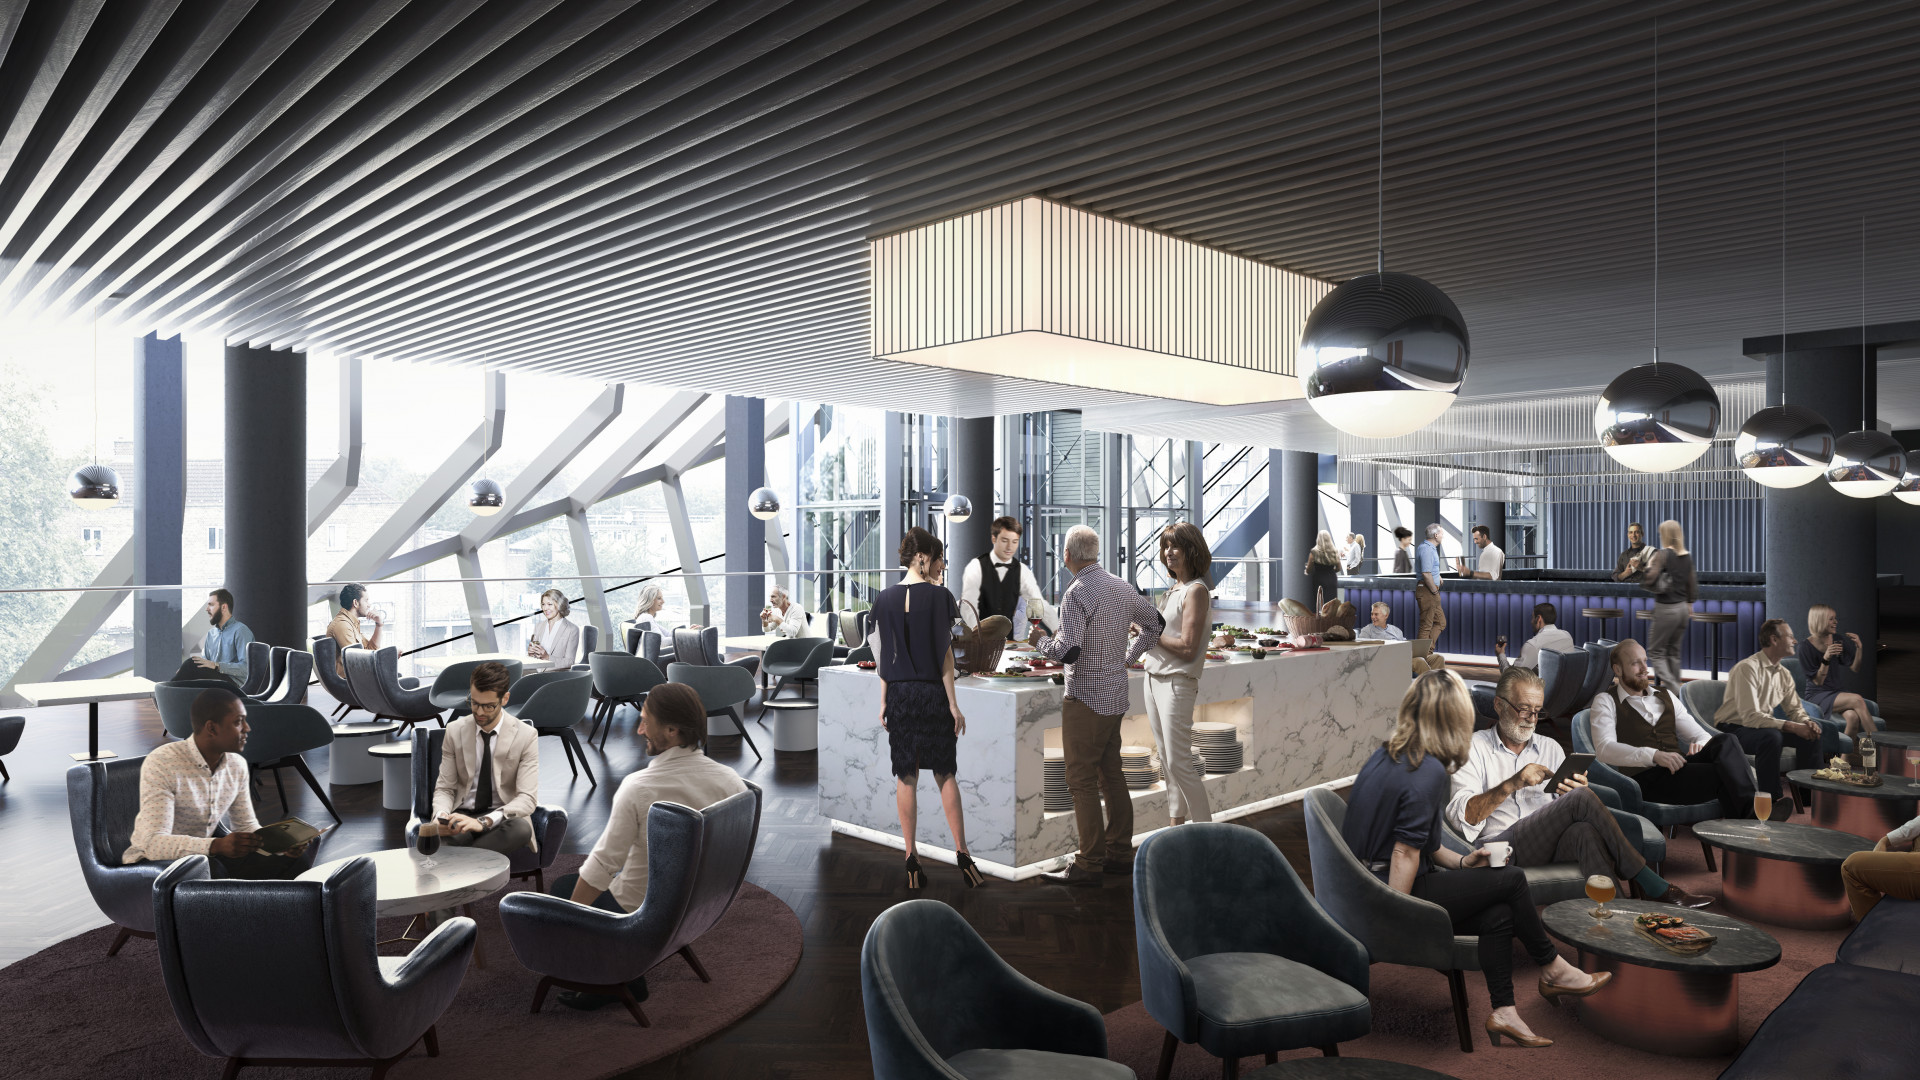 An Artist's rendering of the H Club at The Tottenham Hotspur Stadium